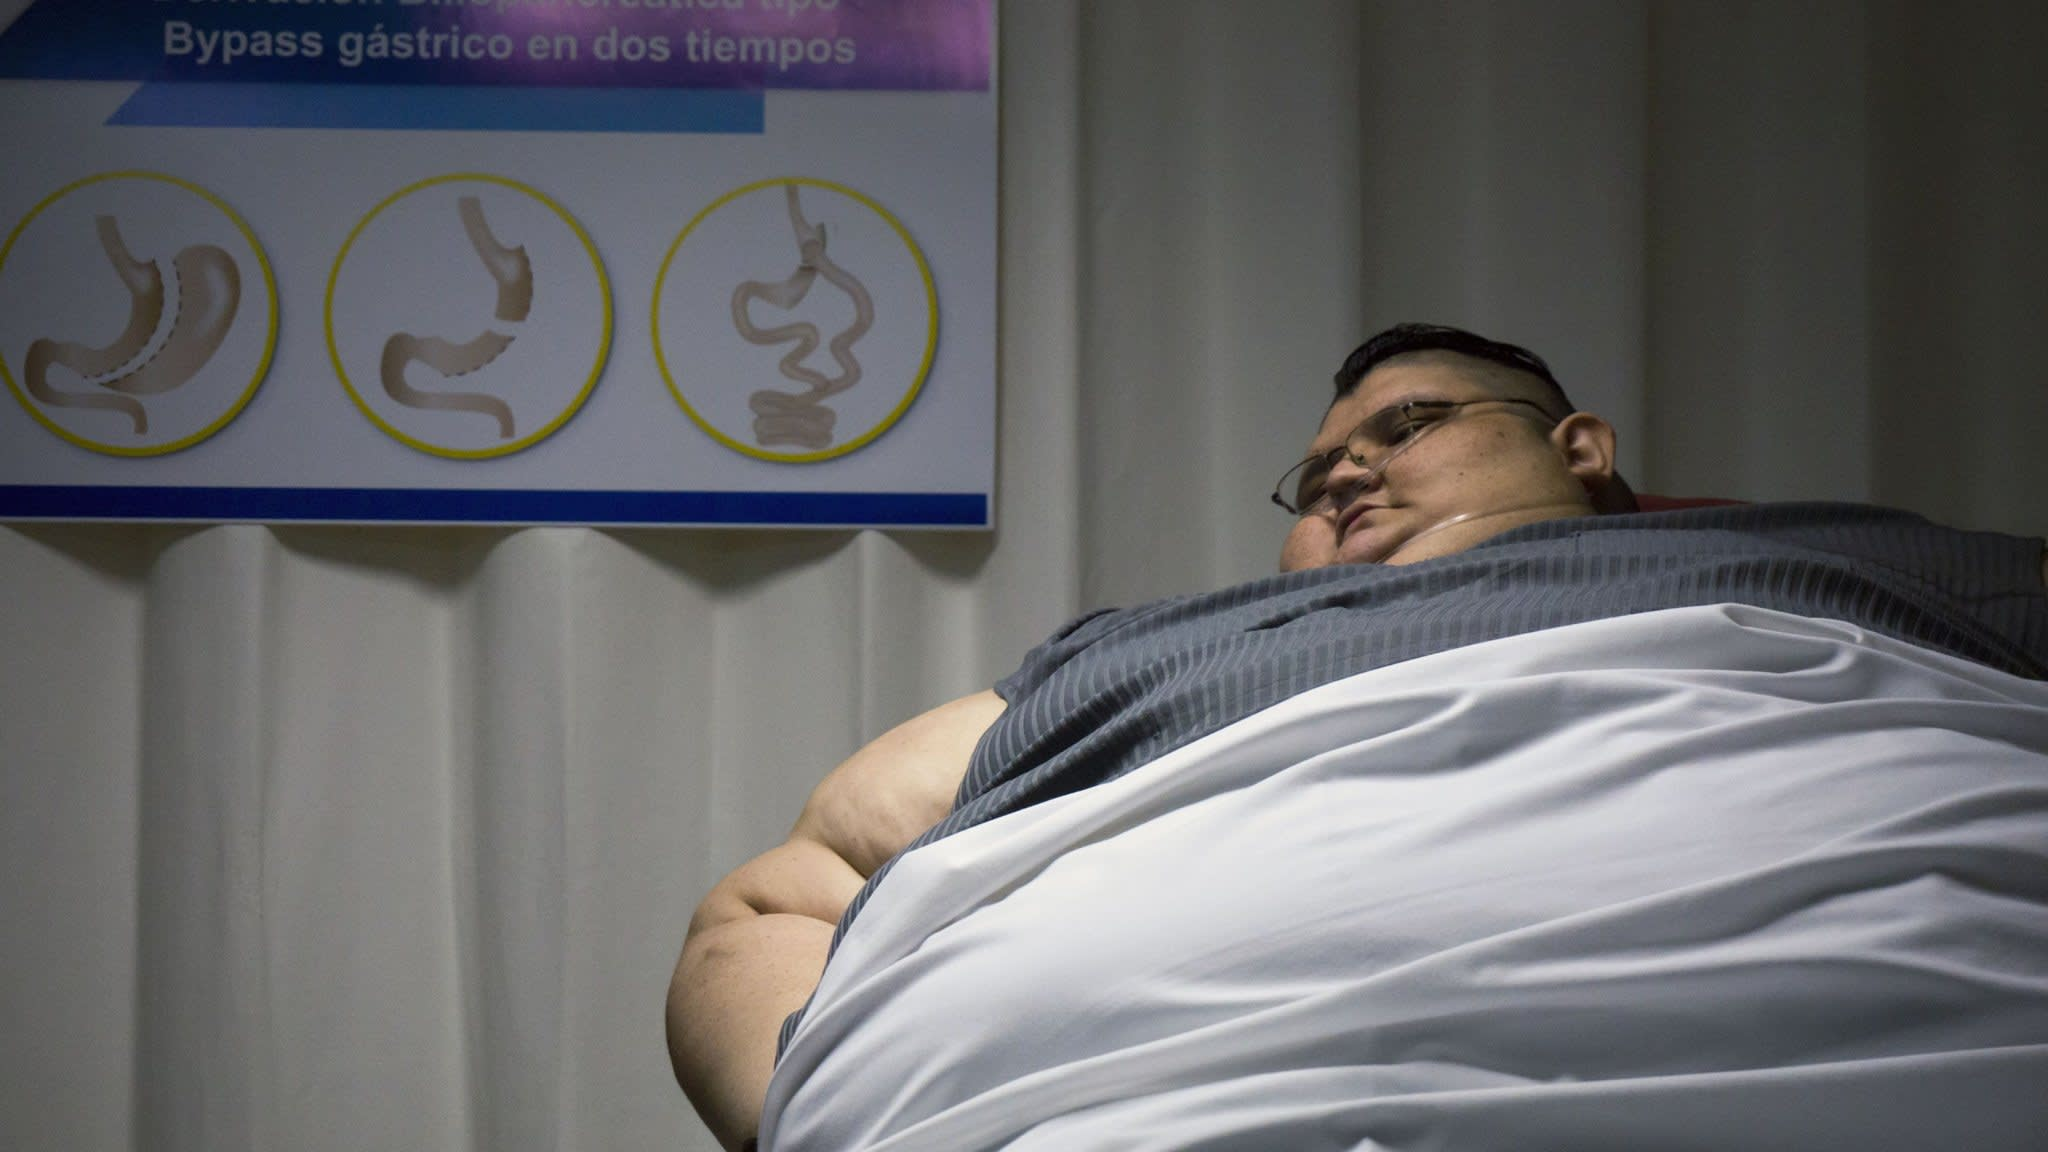 Diabetes sufferer Juan Pedro Franco weighed nearly 600kg, a world record, before dropping 170kg to undergo life-saving surgery